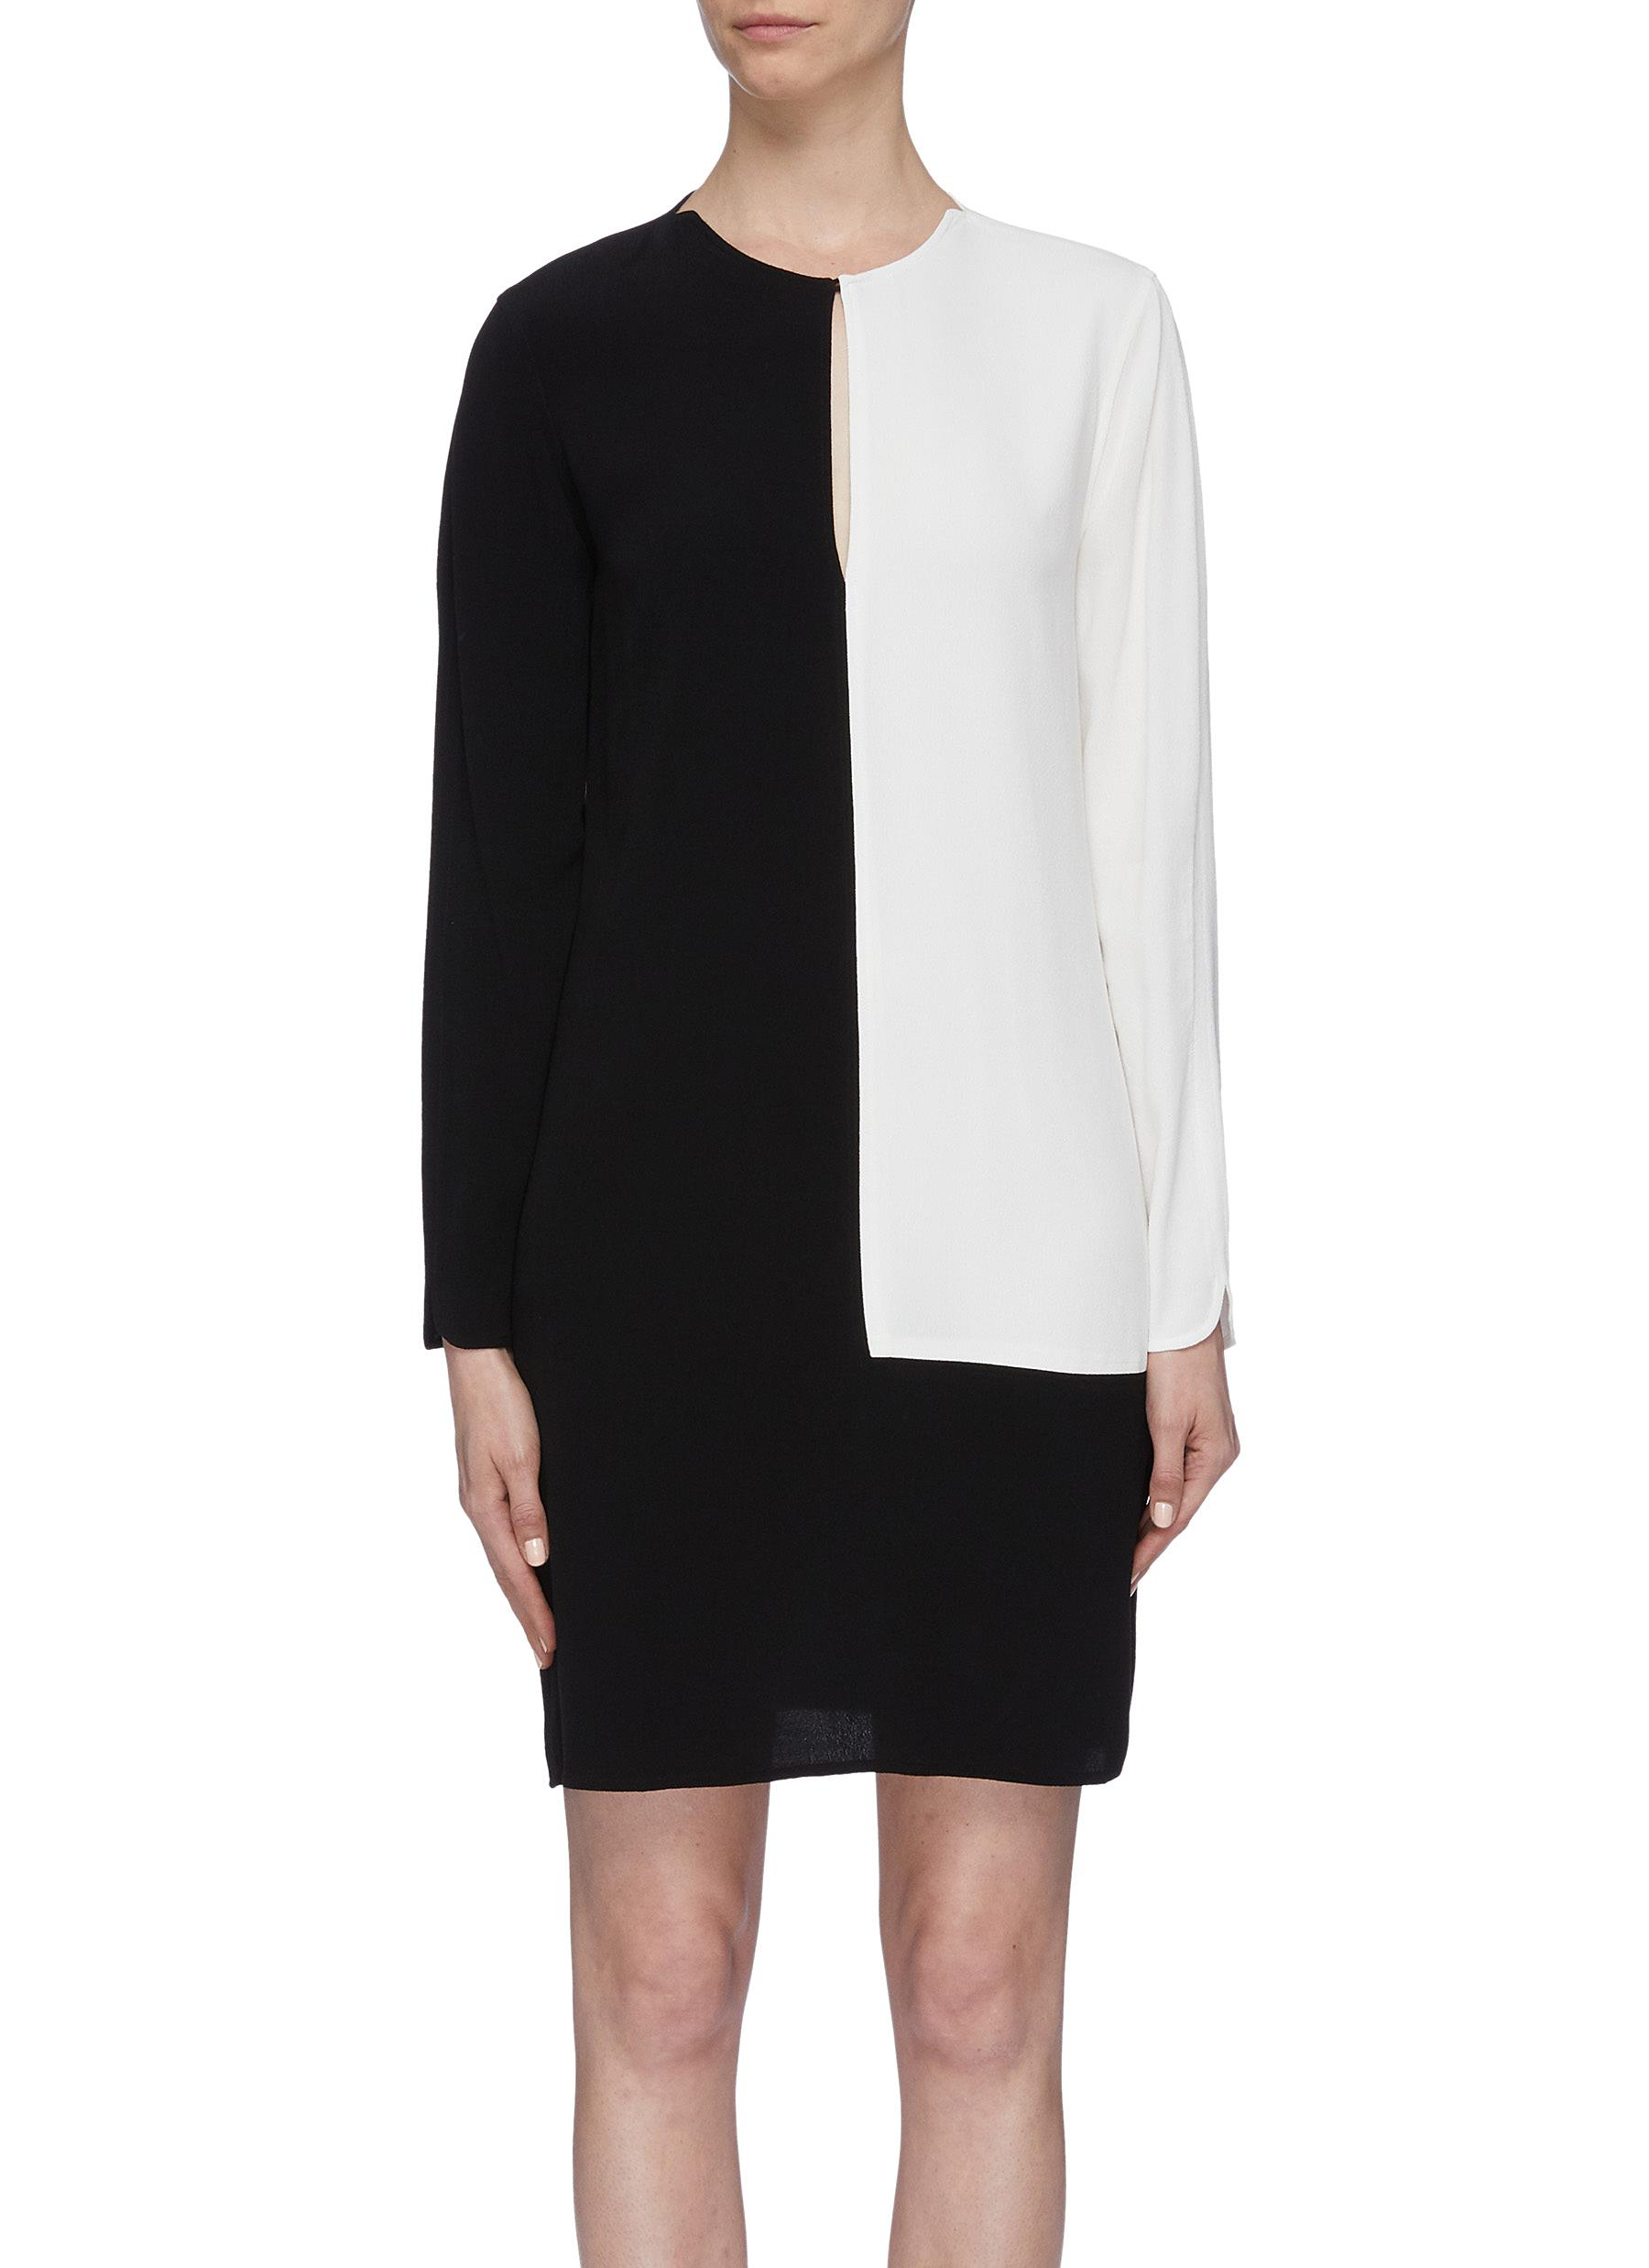 Tatienne colourblock keyhole front dress by Equipment